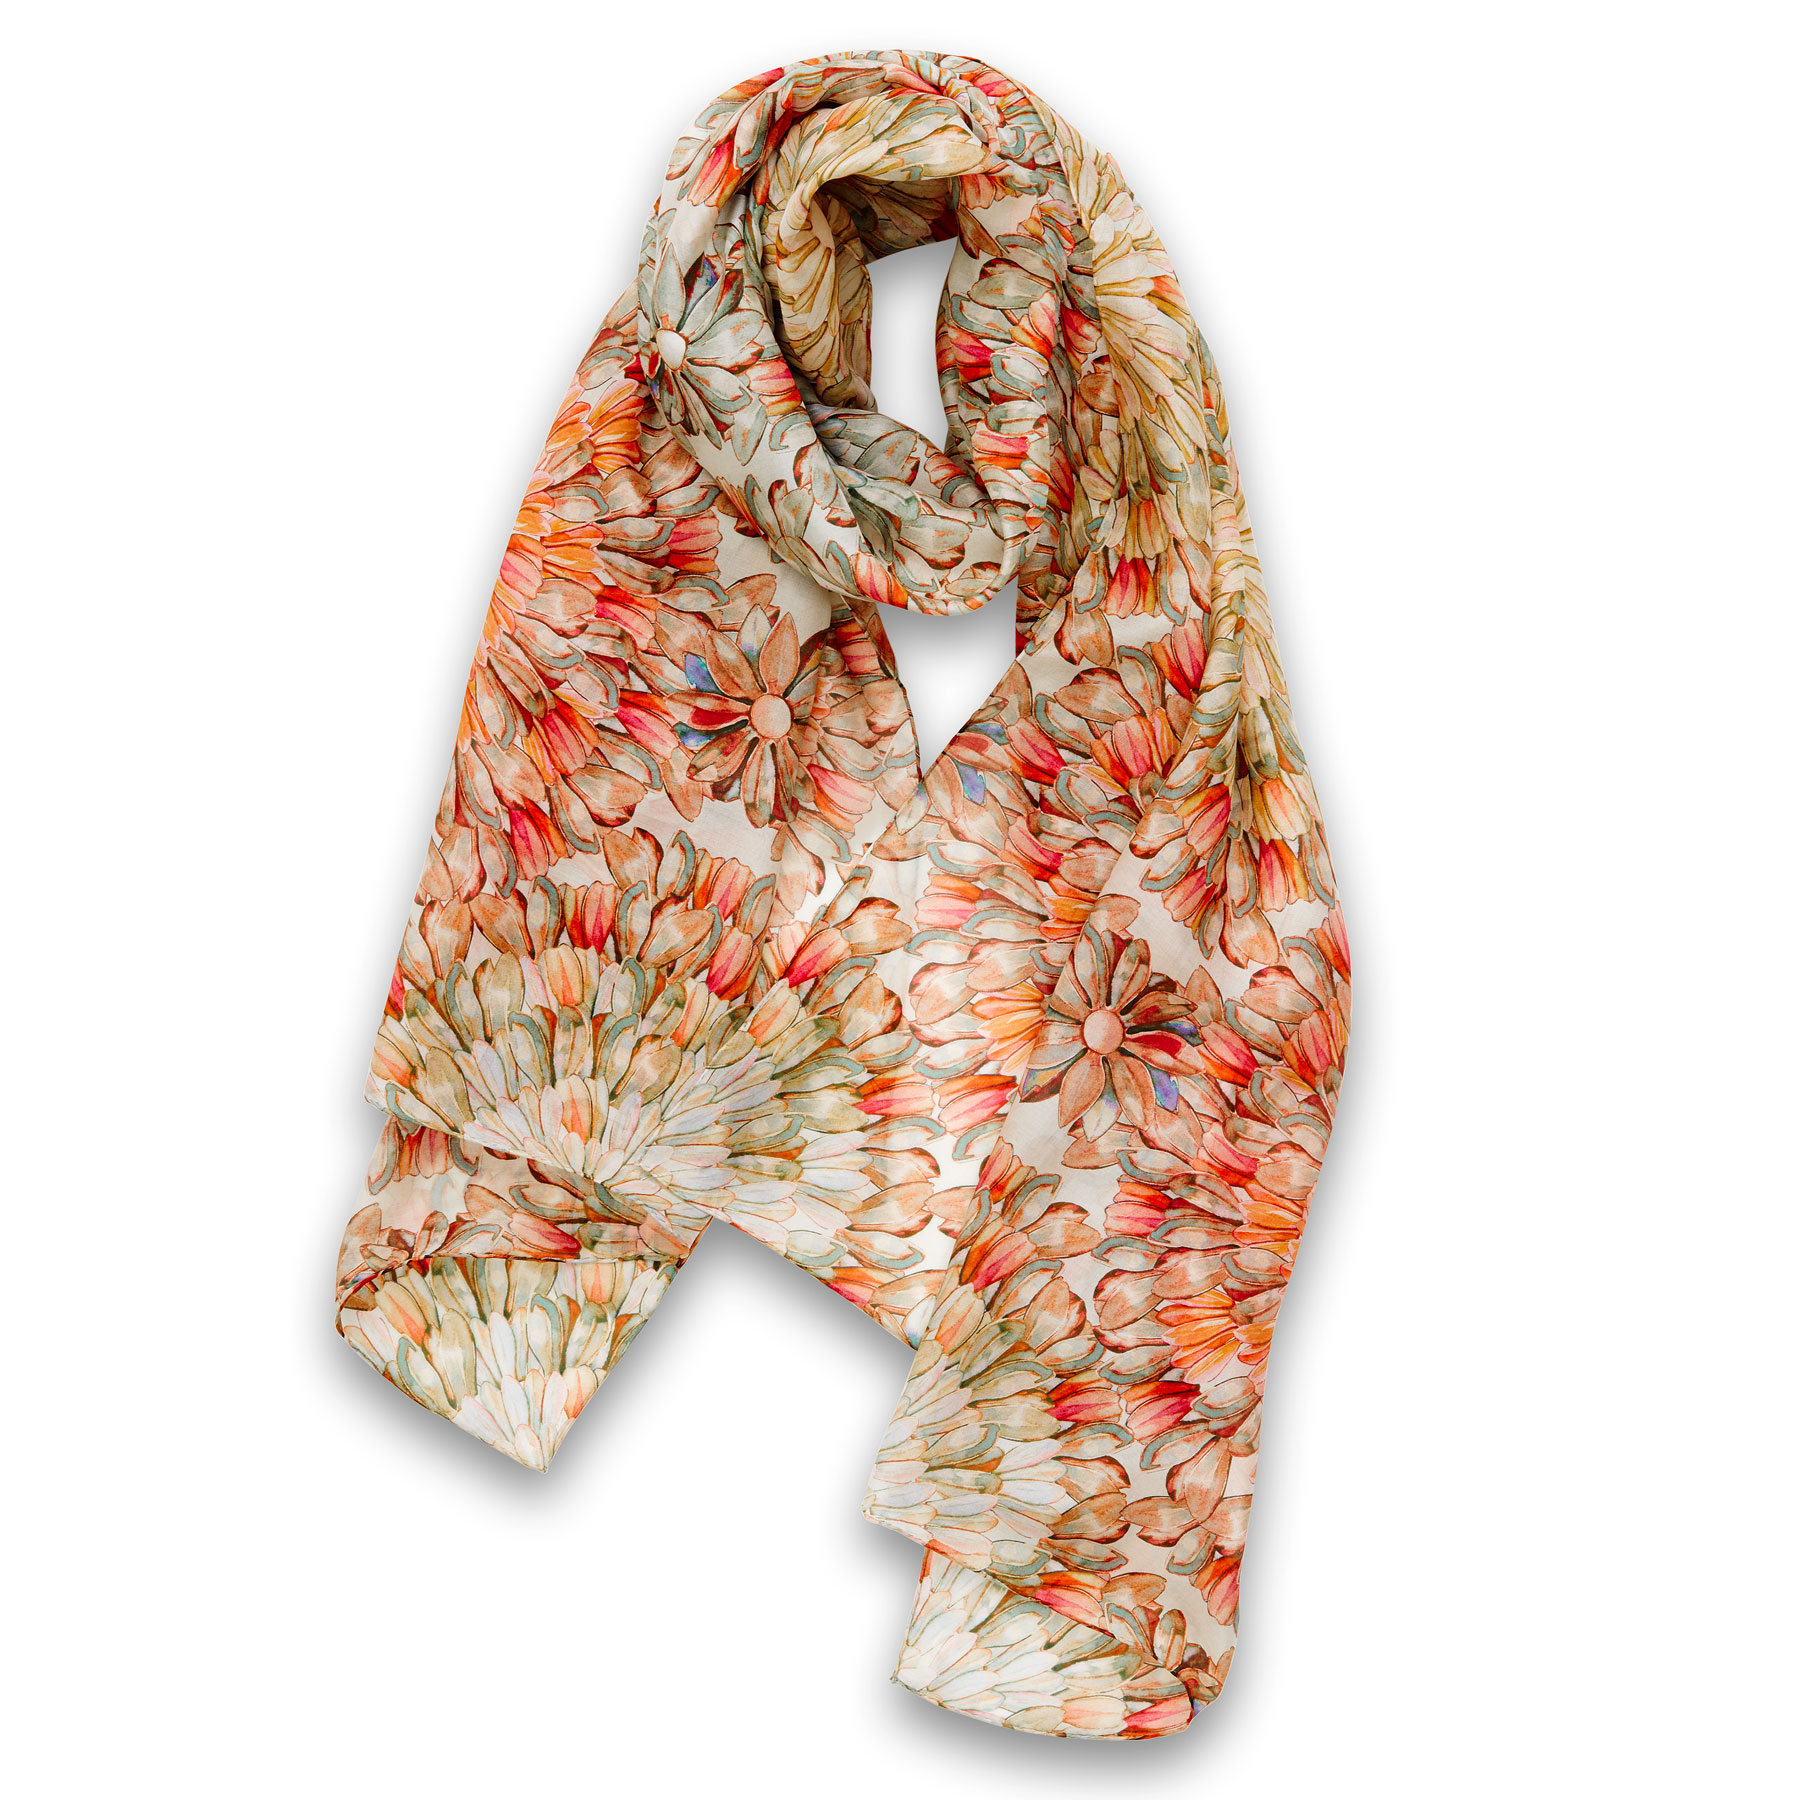 Petali Scarf Ruggine 67% Cotton 33% Silk